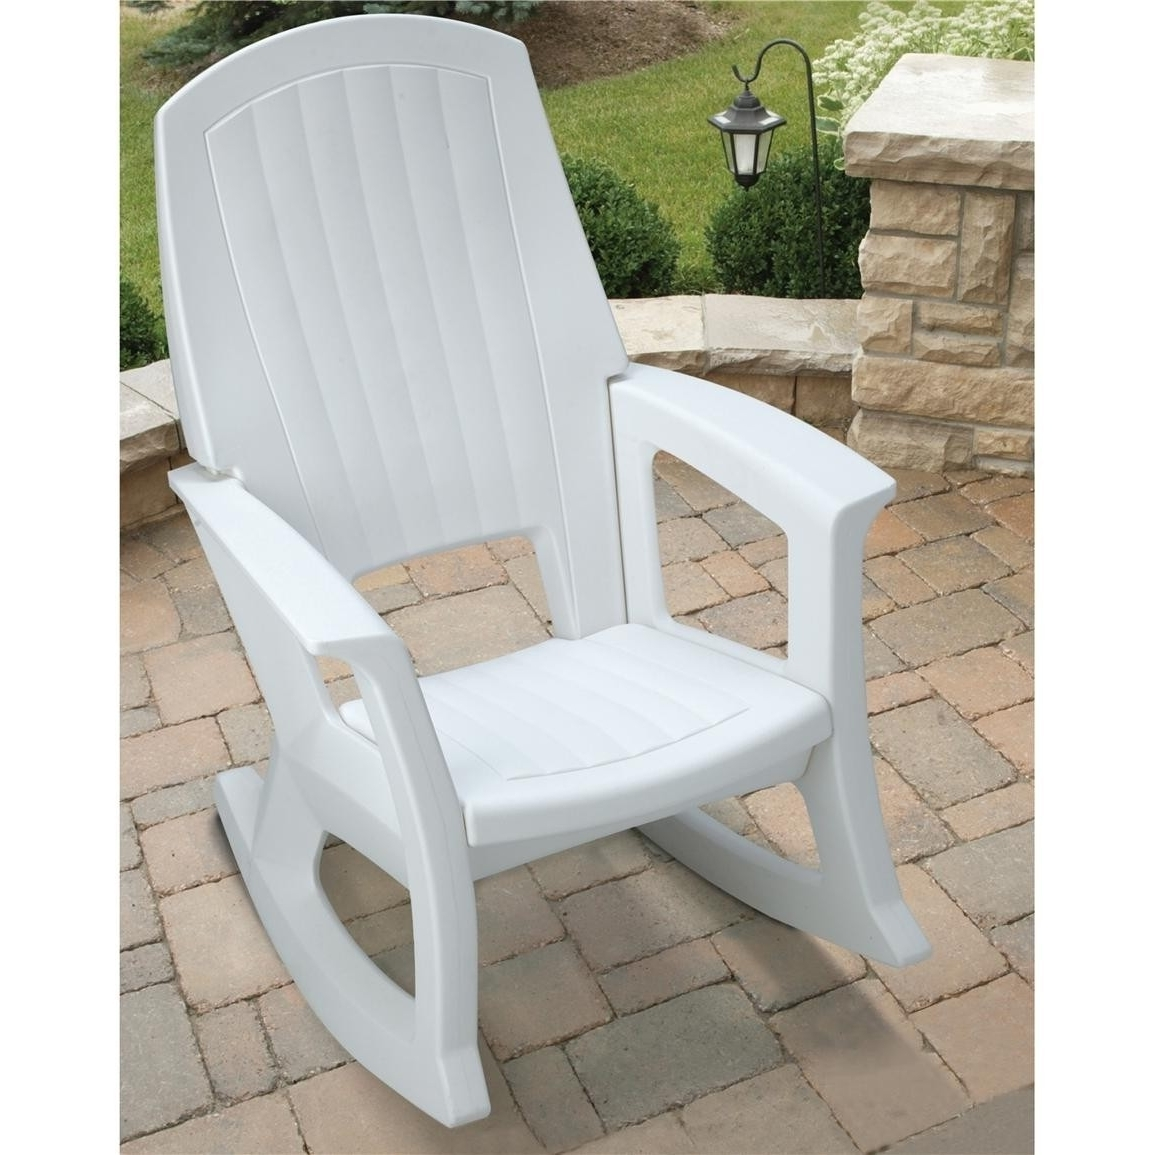 Semco Plastics White Resin Outdoor Patio Rocking Chair Semw Rural In Recent Resin Patio Rocking Chairs (View 17 of 20)